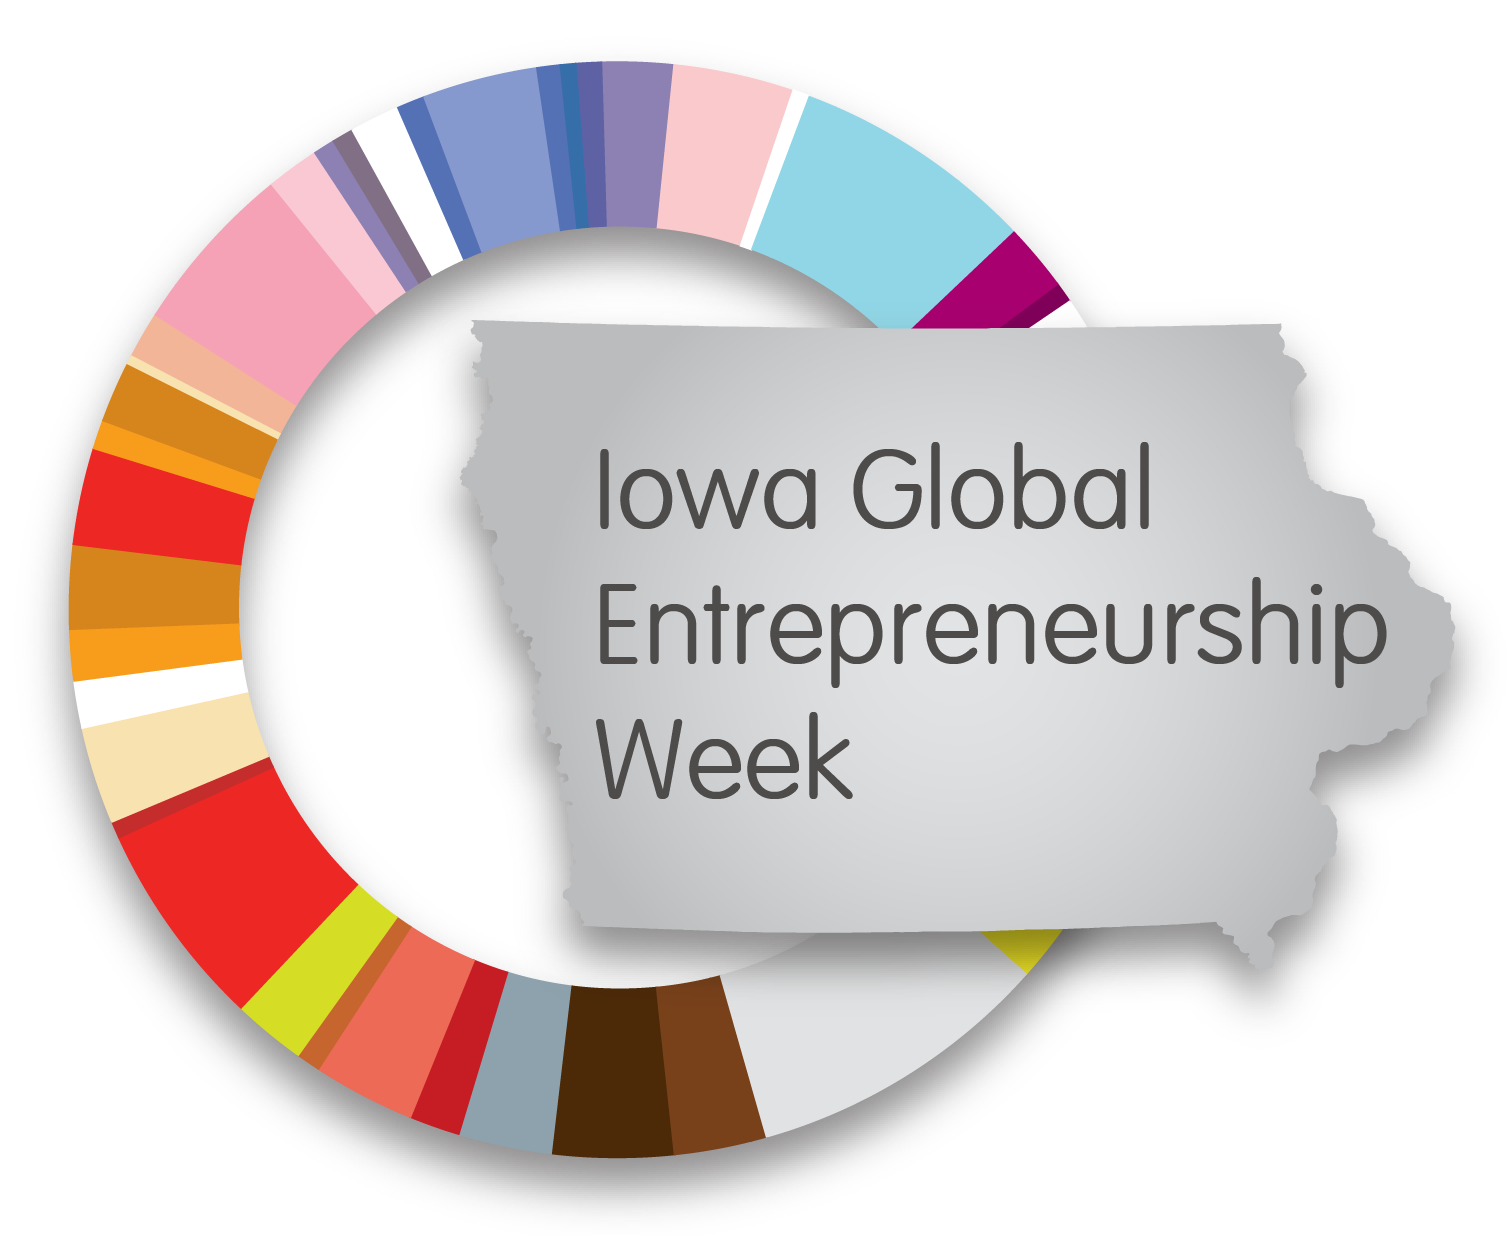 Iowa Global Entrepreneurship Week